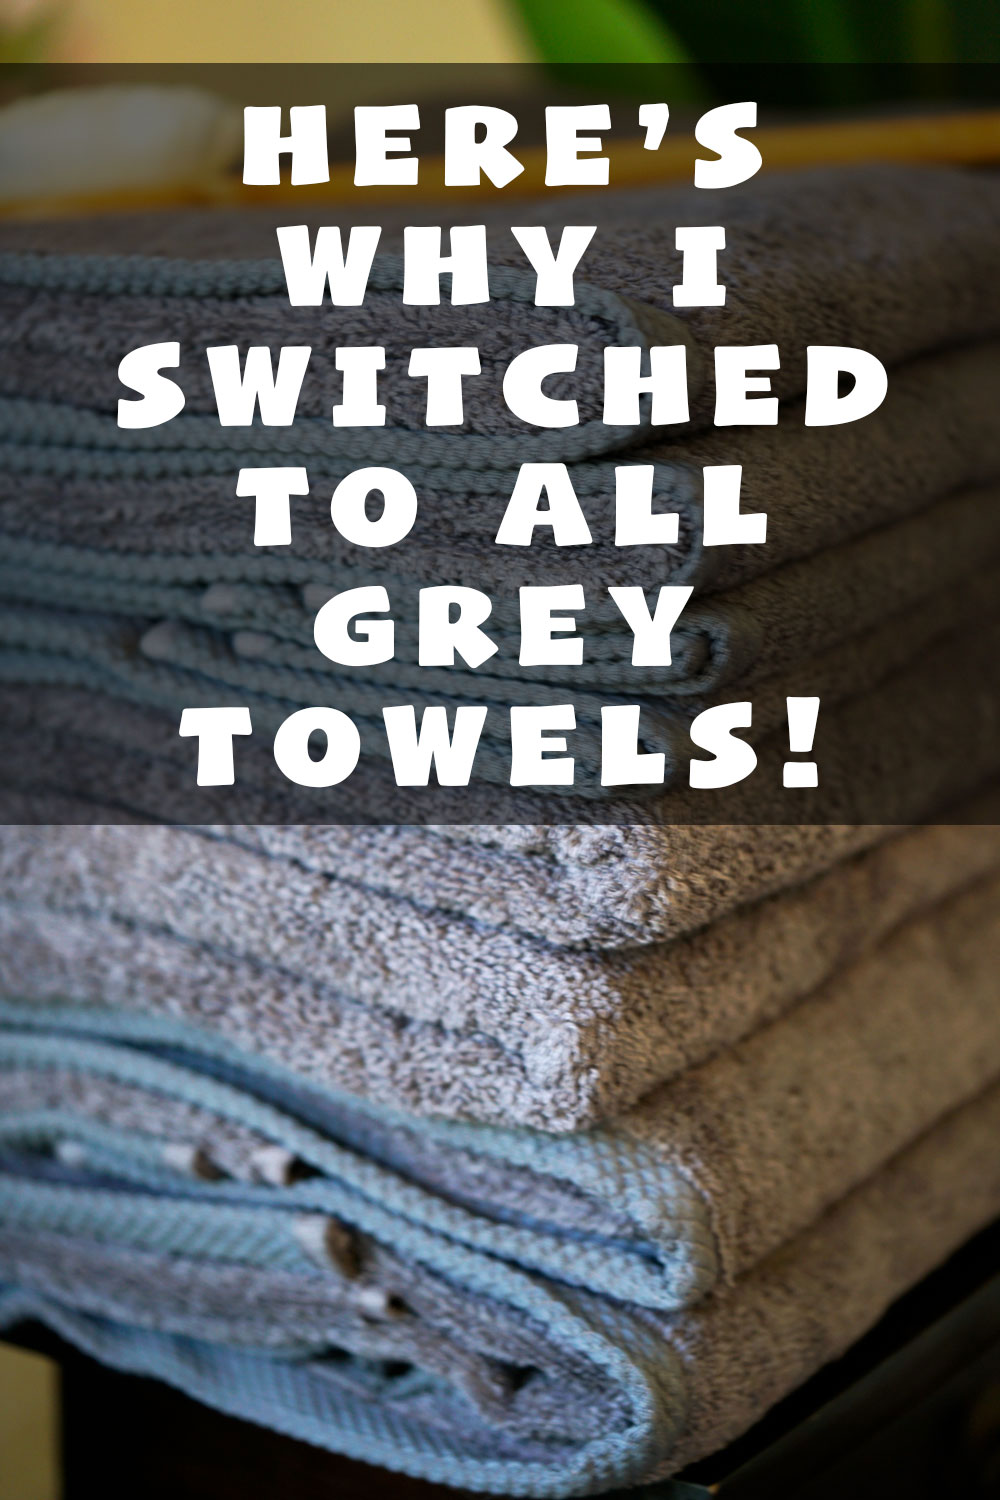 Here's why I switched to all grey towels - amazing Turkish towels deal on Amazon